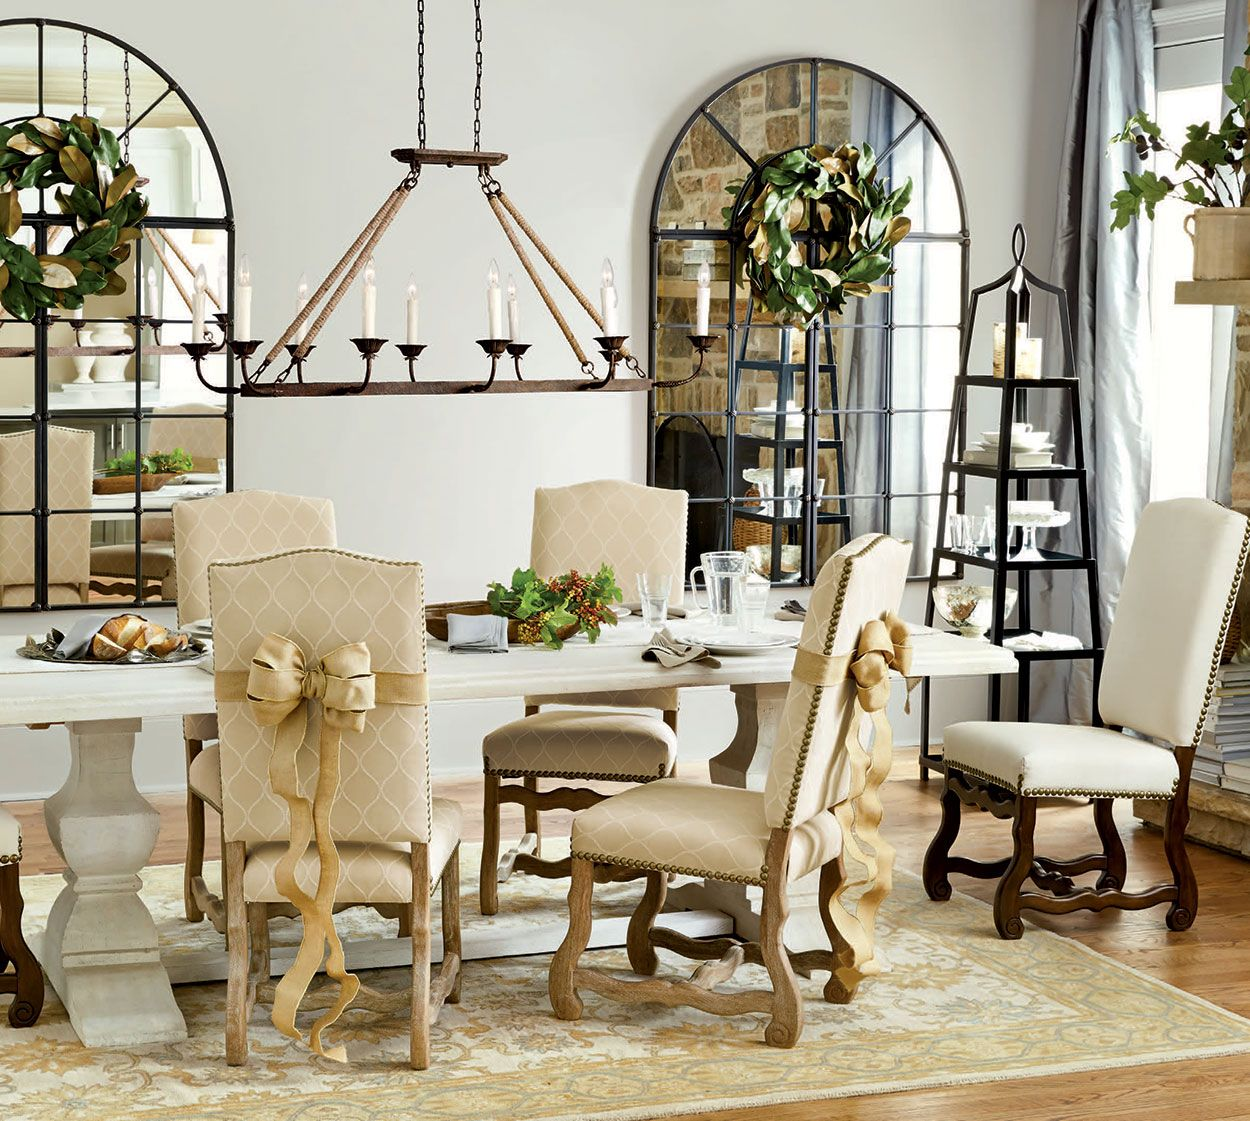 Dining Room Decorating Ideas Mirror Dining Room Dining Room Remodel Elegant Dining Room